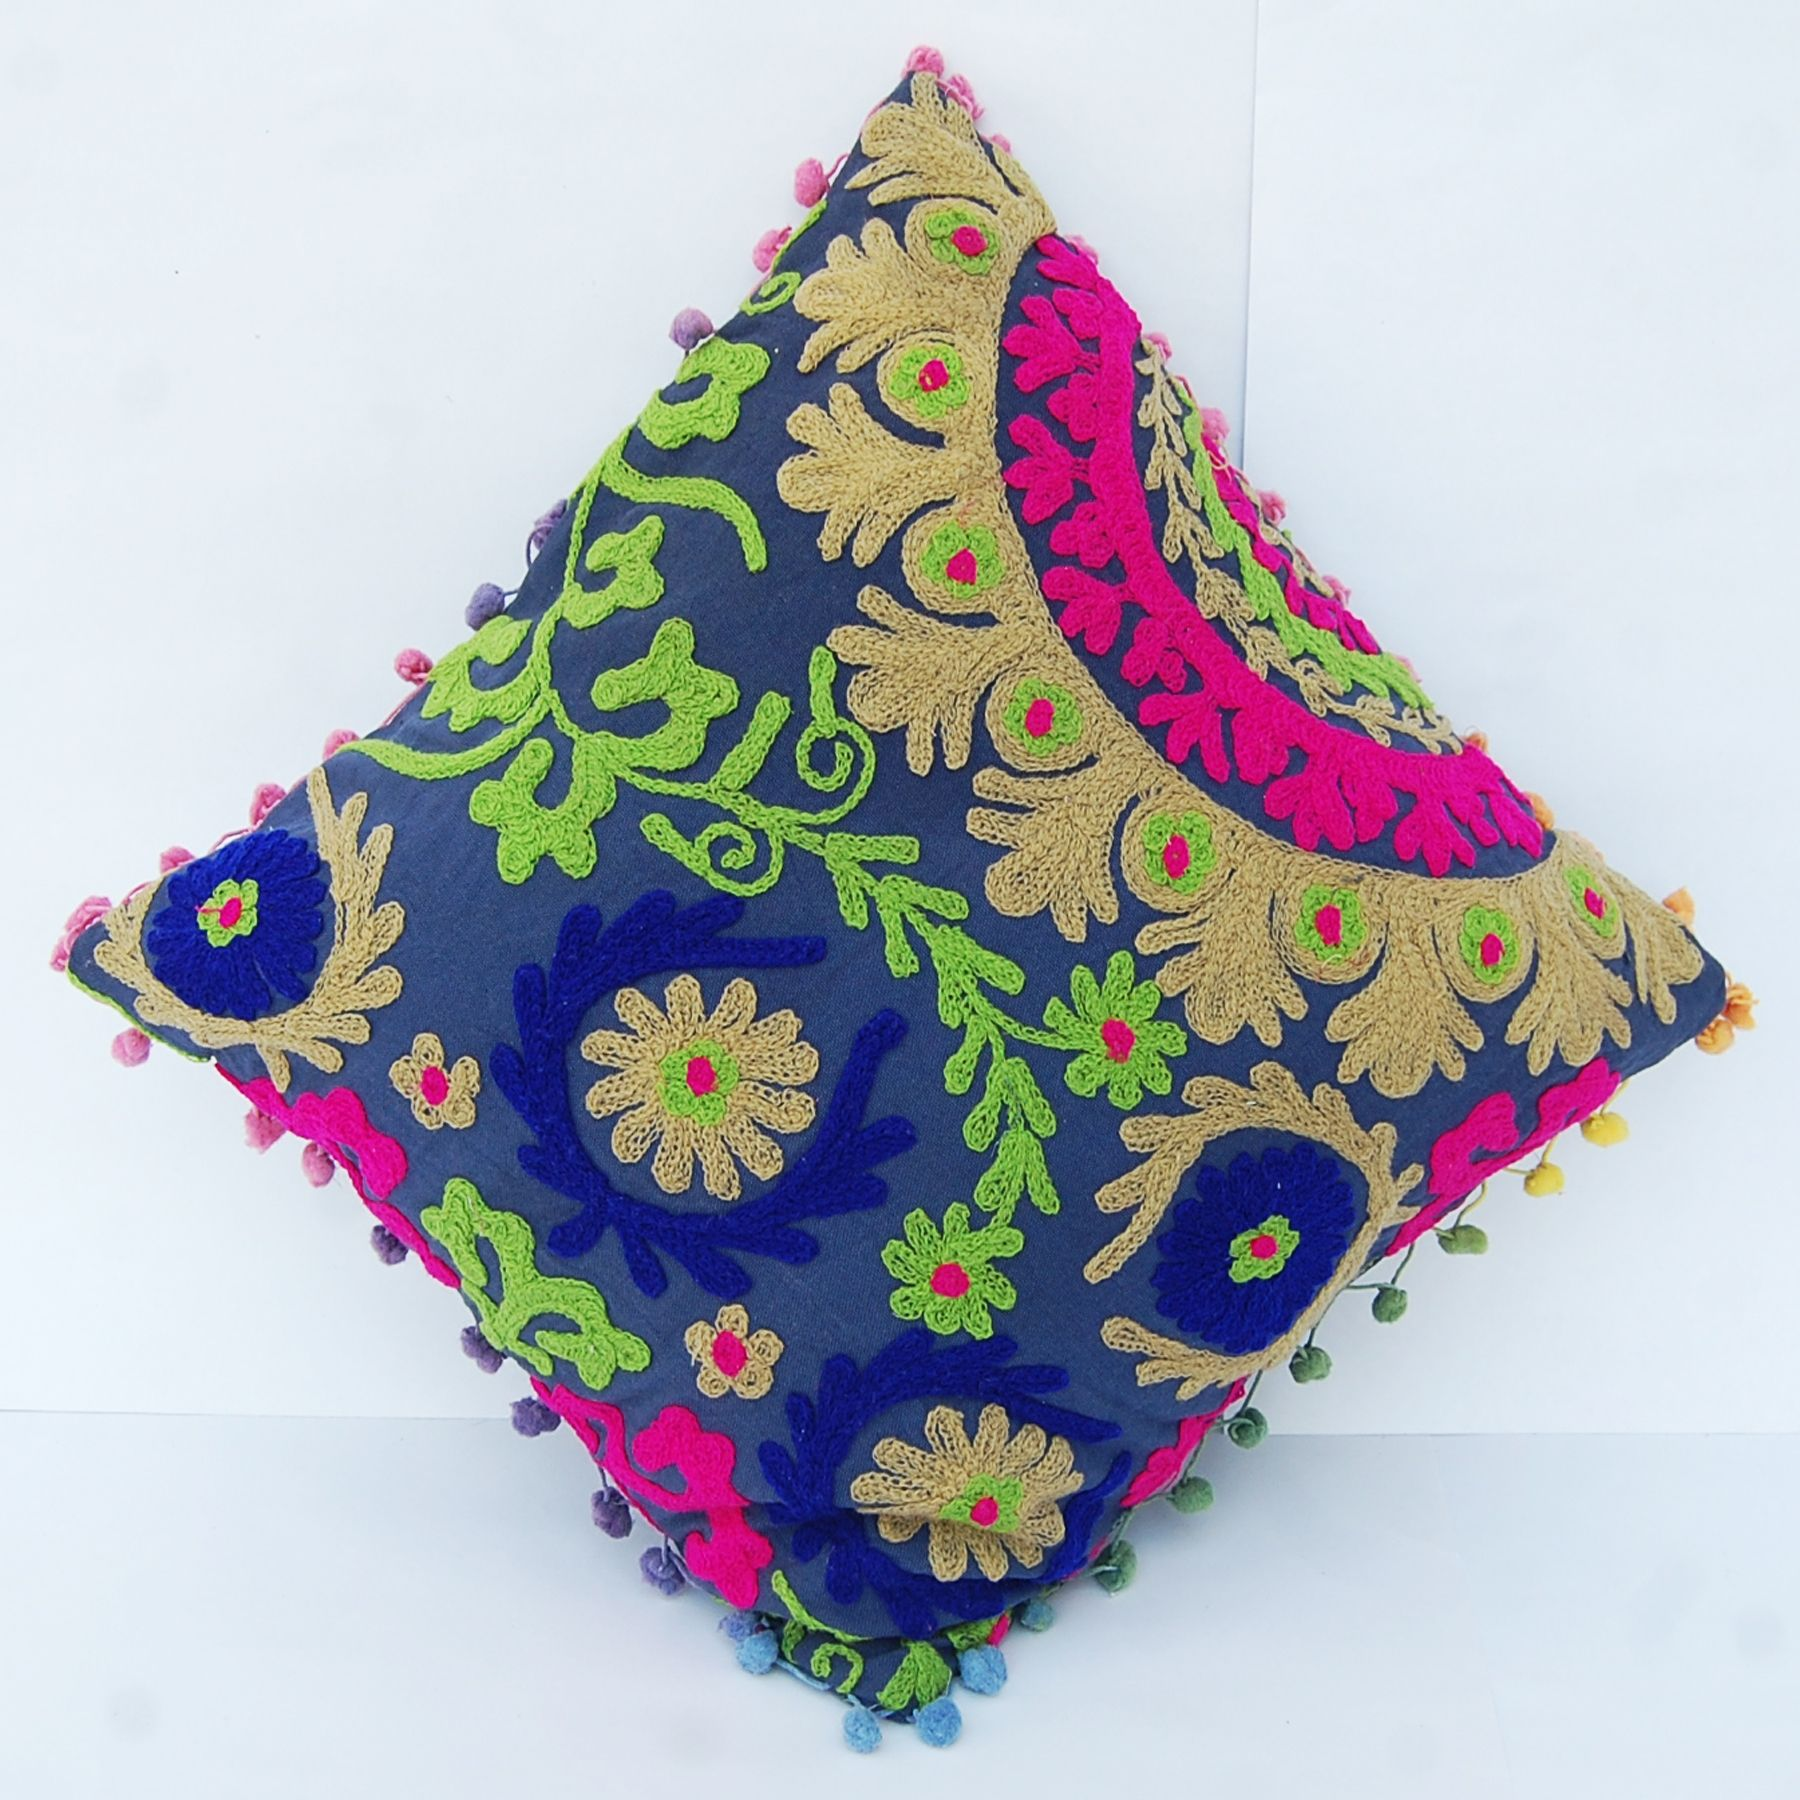 Handmade vintage embroidery cushion cover pillow cover christmas